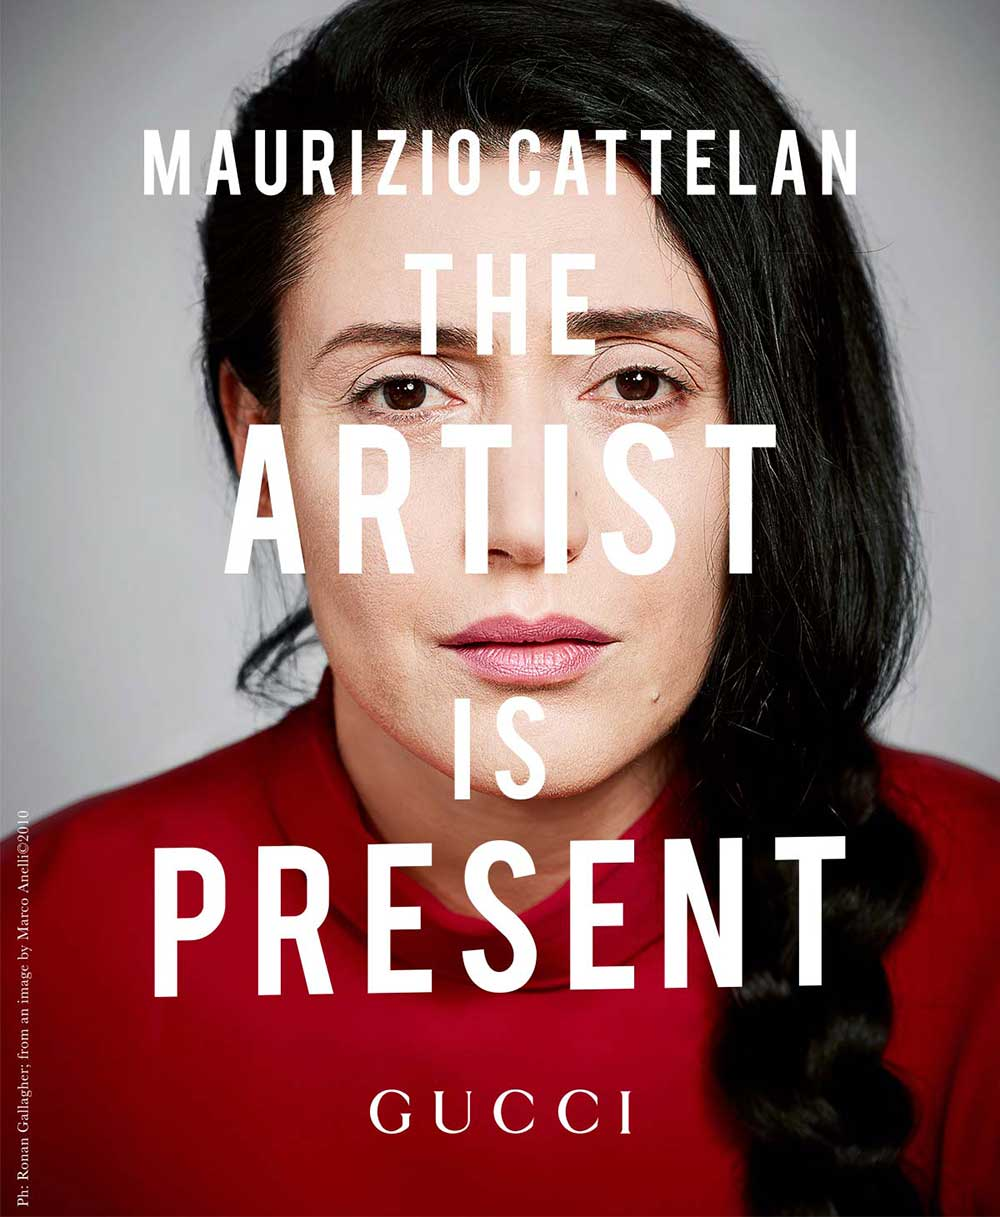 "A reproduction of Marina Abramovic's portrait as it appears in Gucci's version of ""The Artist Is Present"" I Photo courtesy of Ronan Gallagher, inspired by the original taken by Marco Anelli"